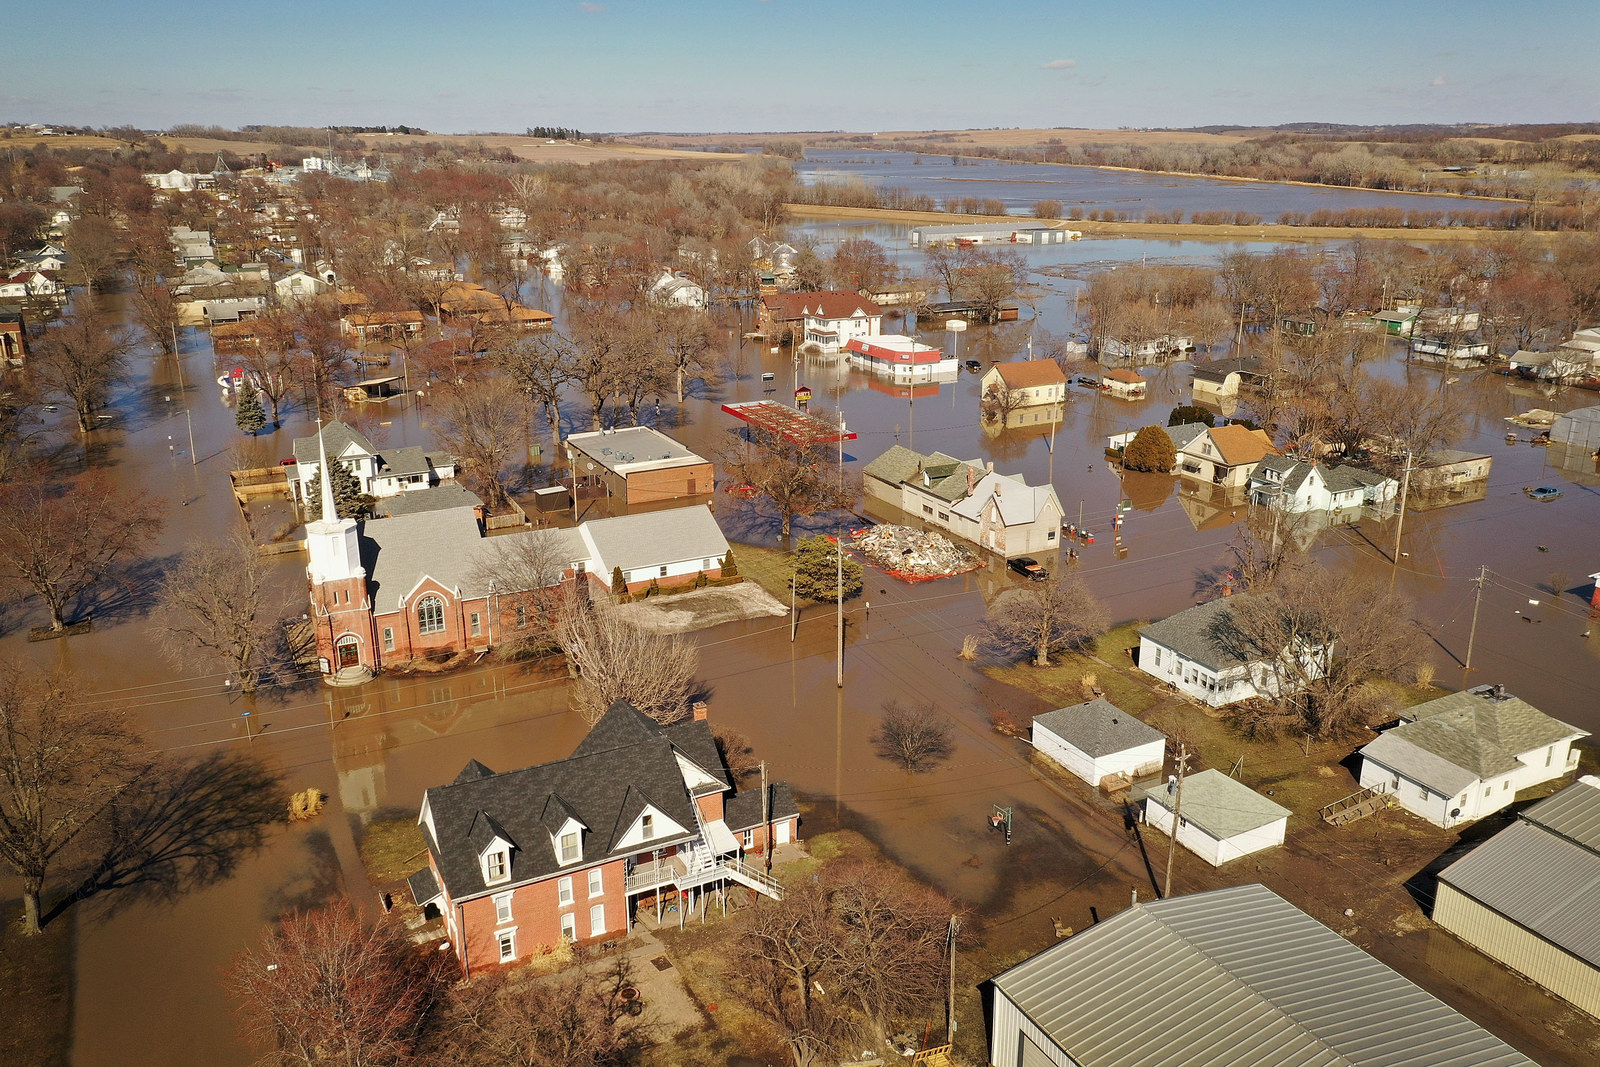 Forecasters Warn Flooding Could Be The Worst On Record In Much Of The US This Spring